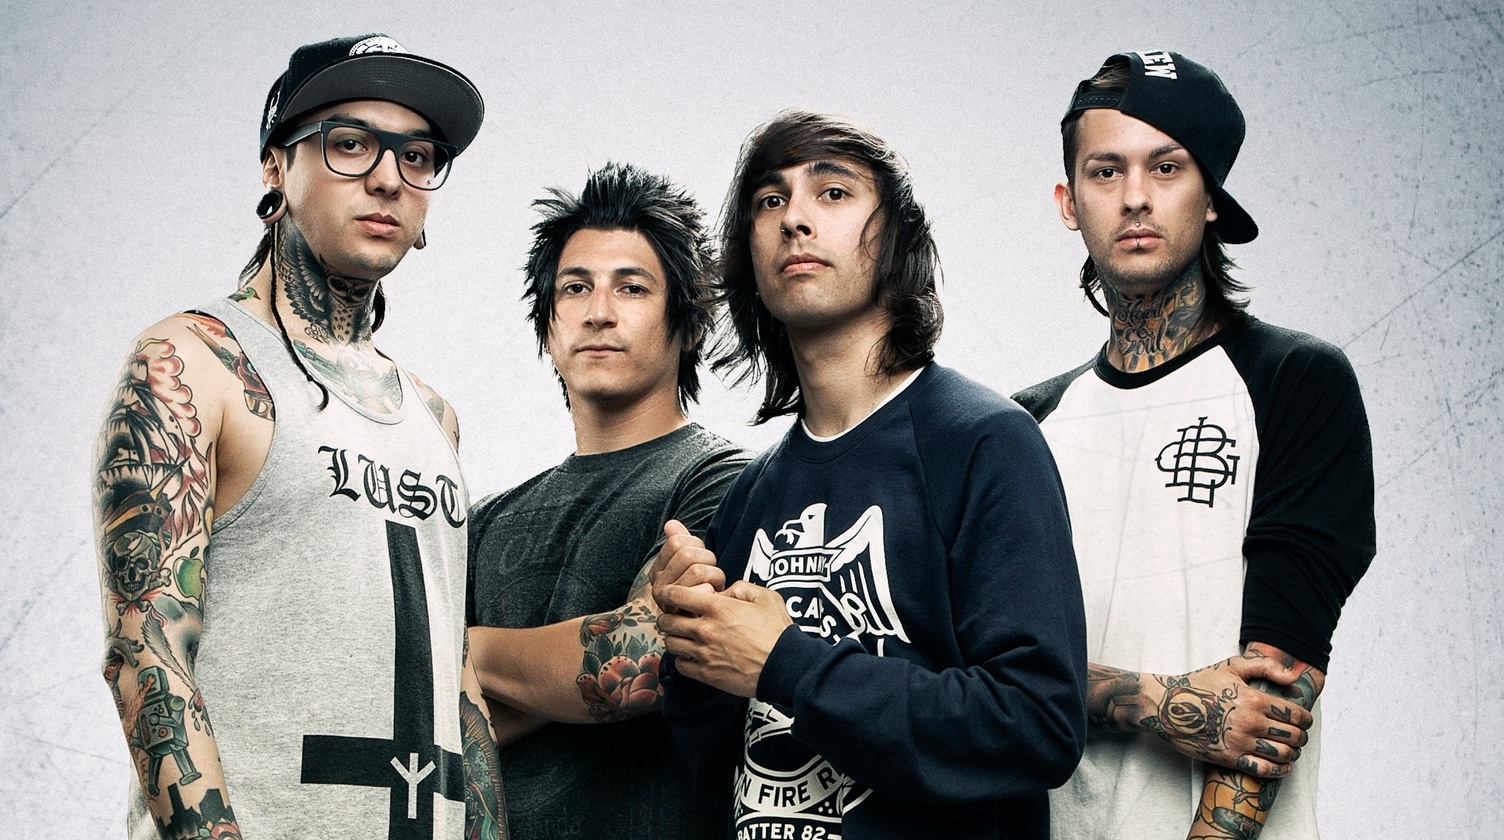 pierce the veil misadventures review